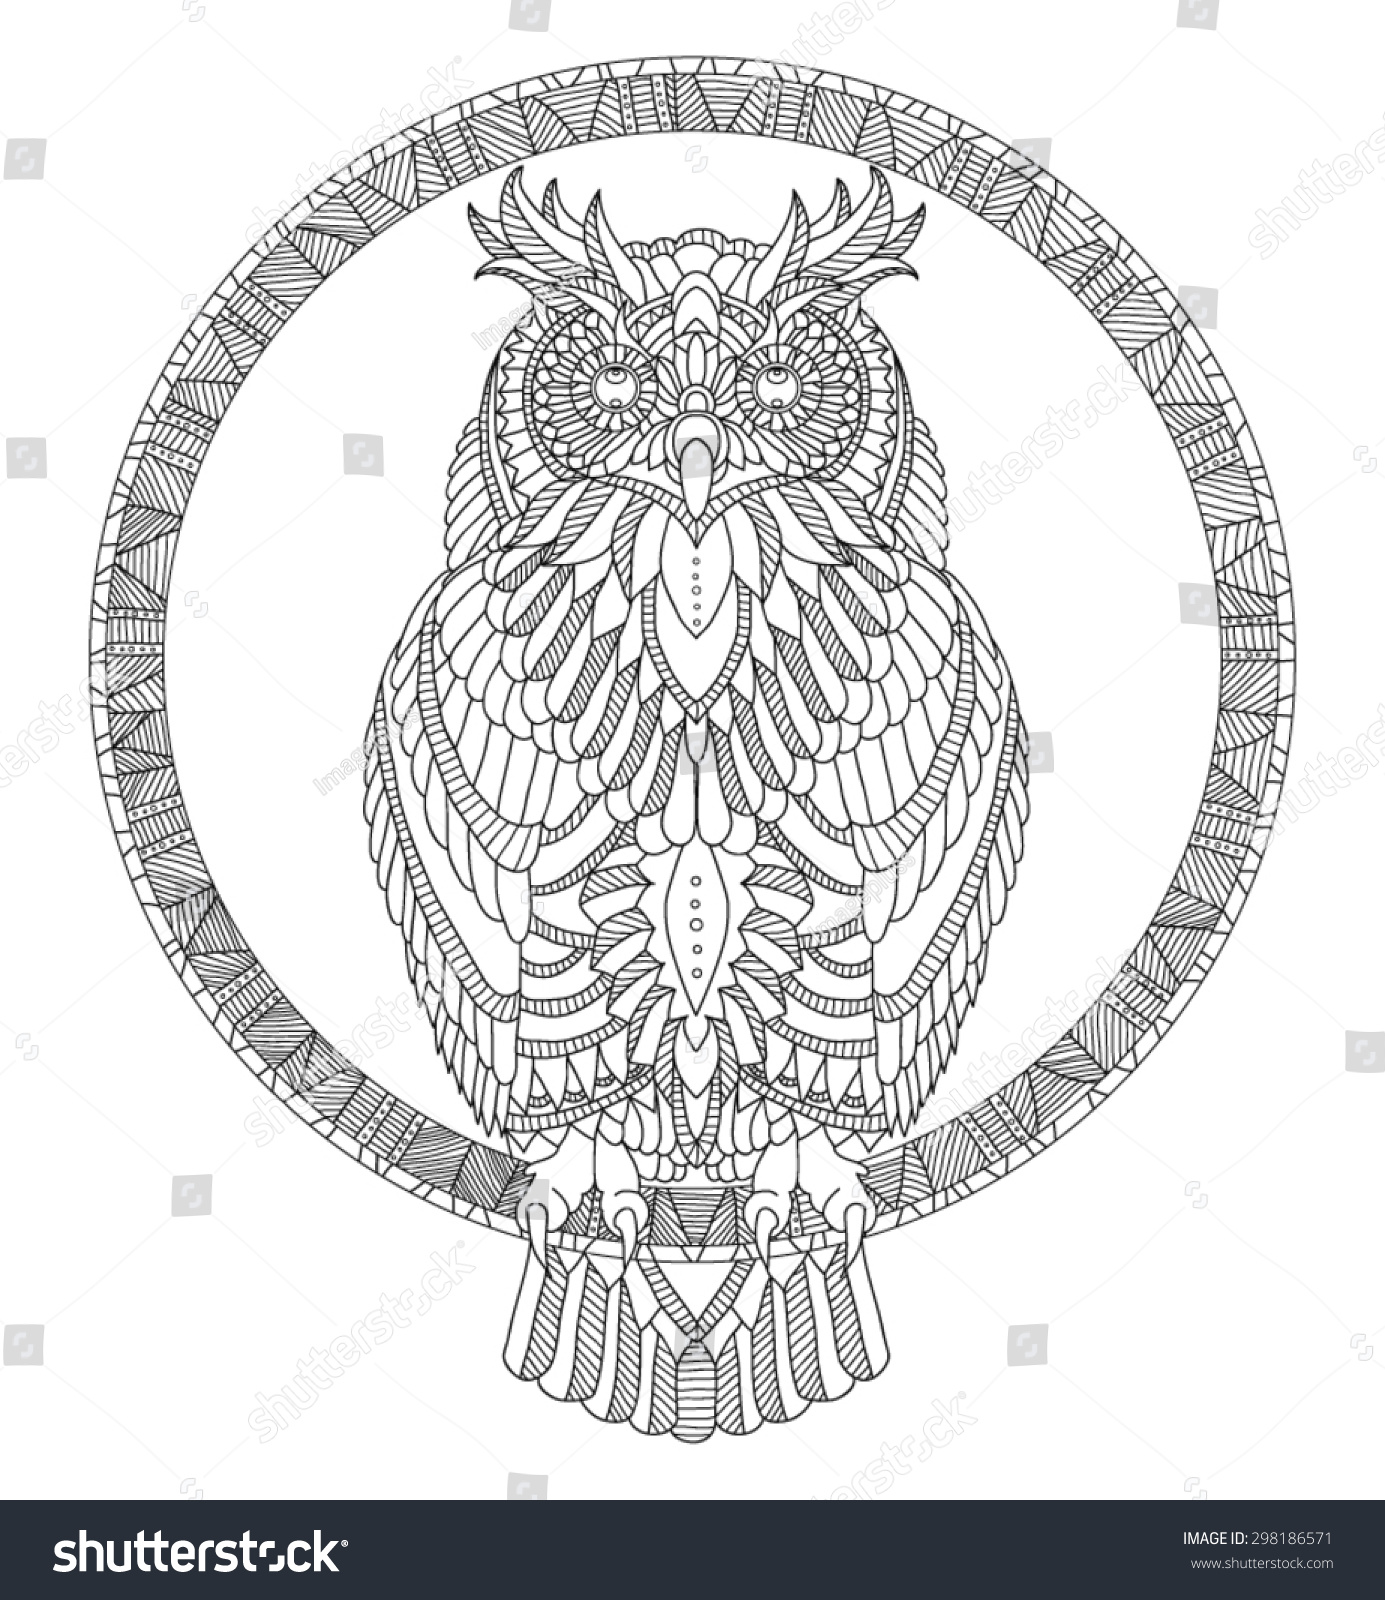 Hand Drawn Owl Coloring Page Stock Vector Royalty Free 298186571